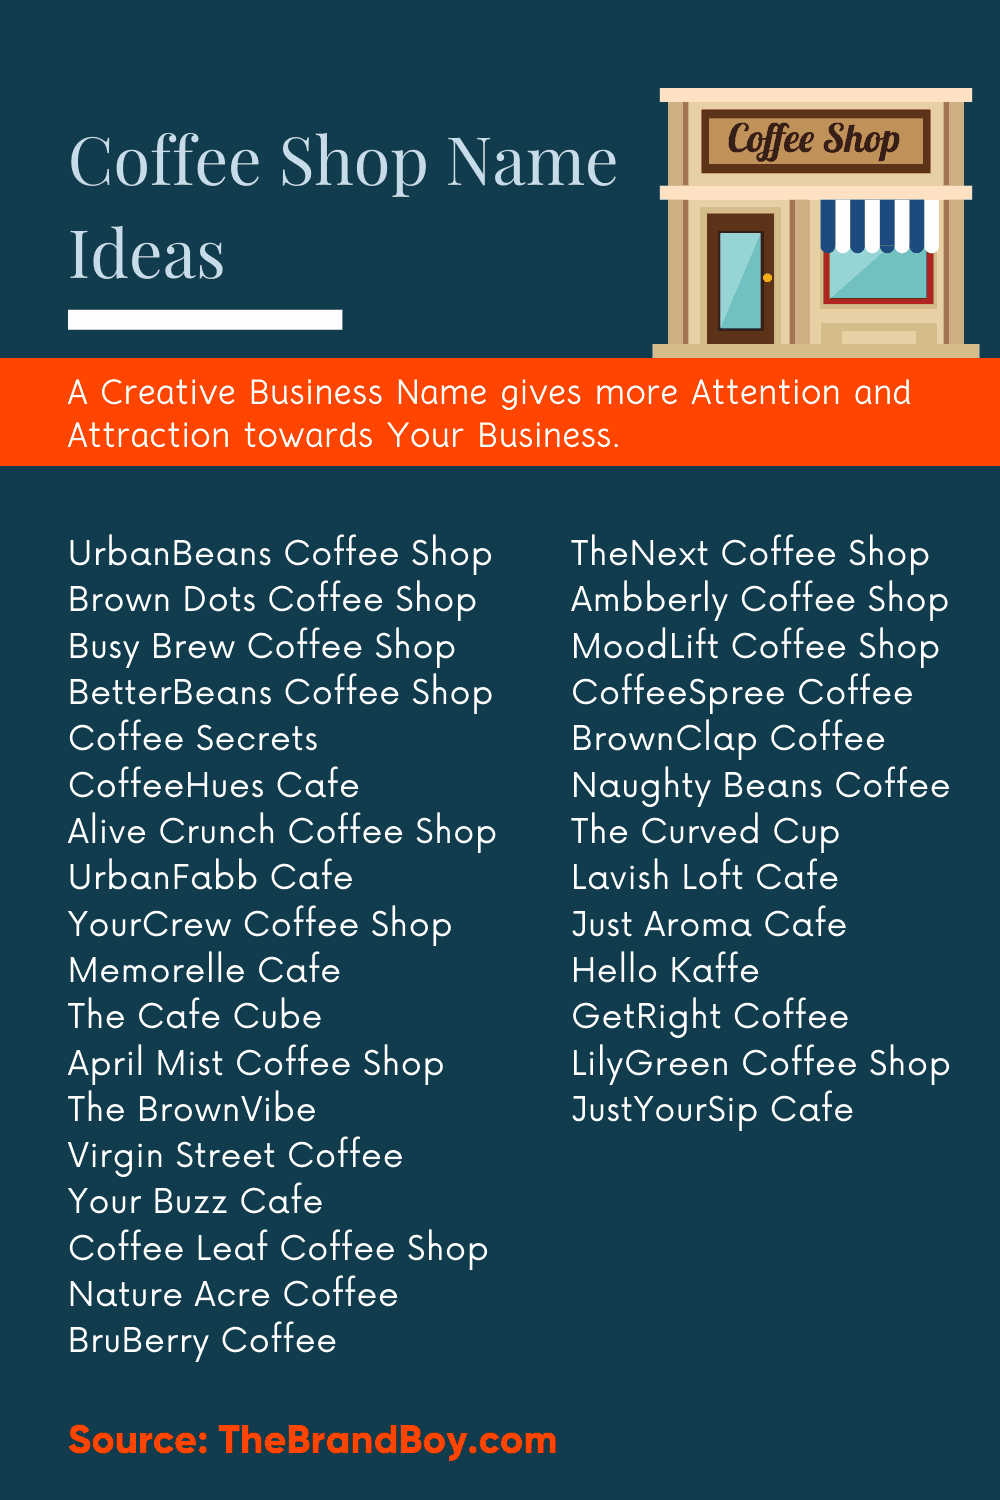 485 Great Coffee Shop Names Video Infographic